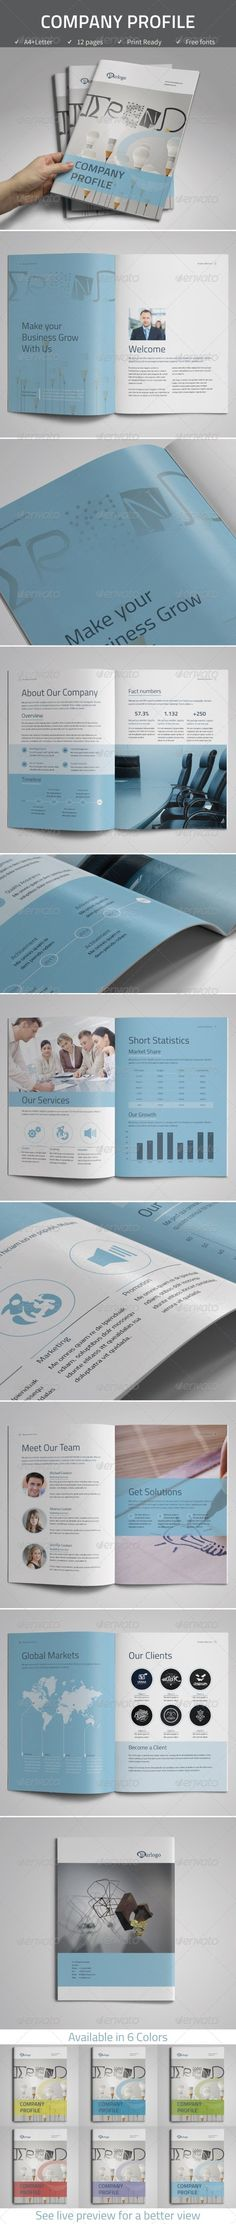 Professional Company Profile Brochure Template Brochure template - professional business profile template